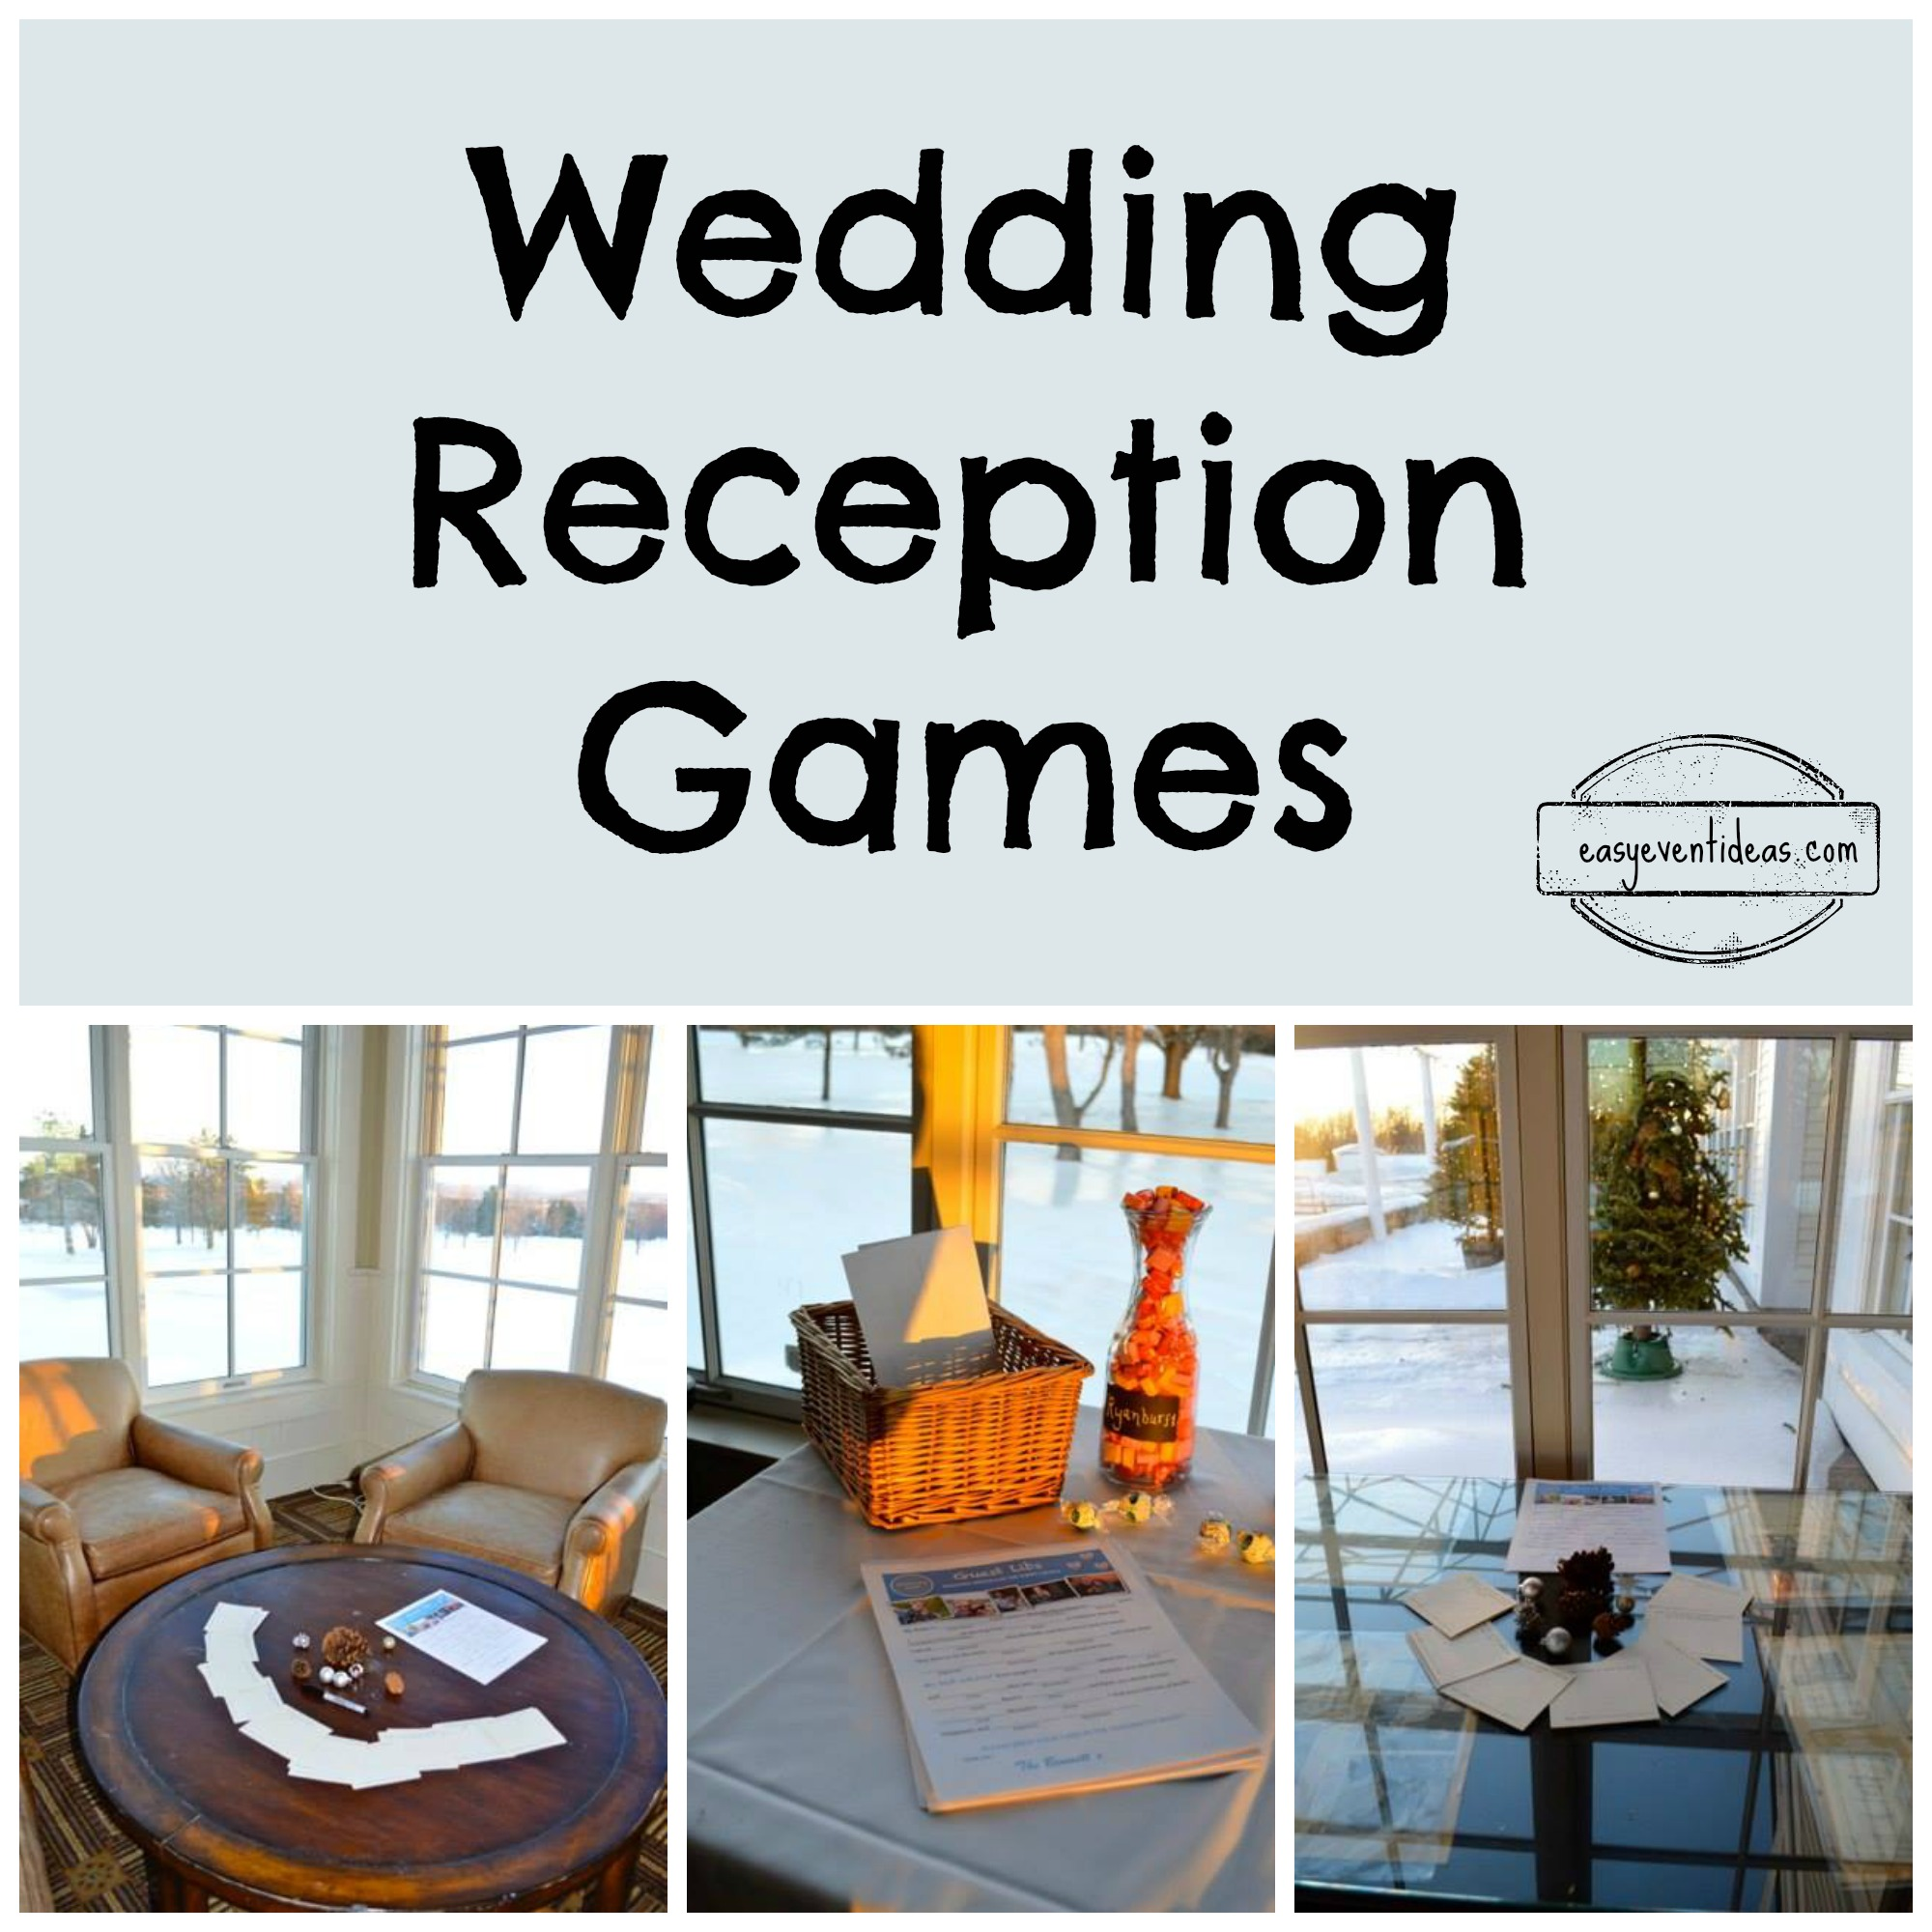 Video Game Wedding Ideas: Wedding Reception Games